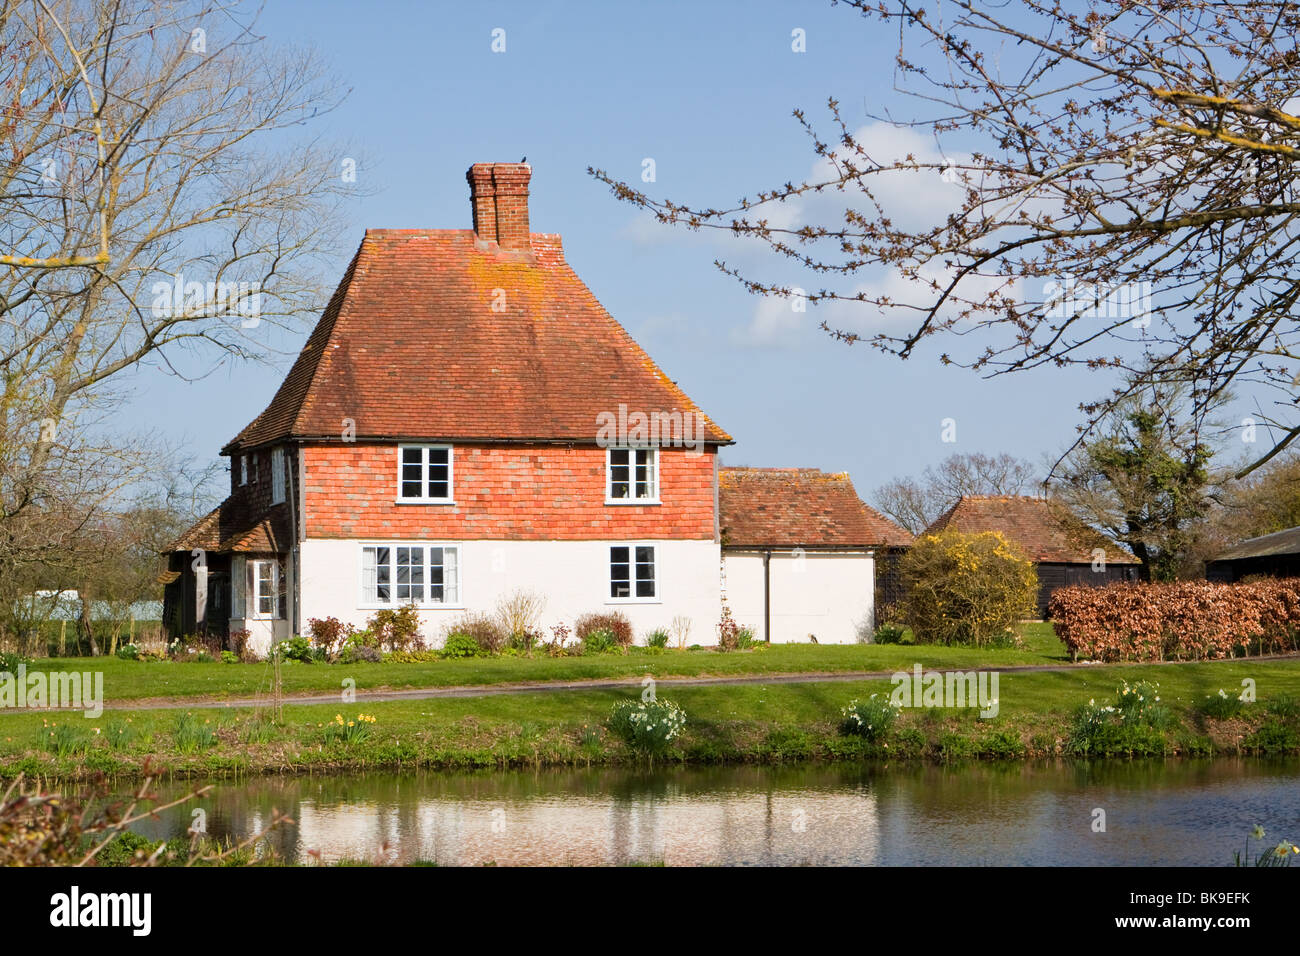 Typical Kentish Building Clad in Traditional Clay Peg Tiles - Stock Image